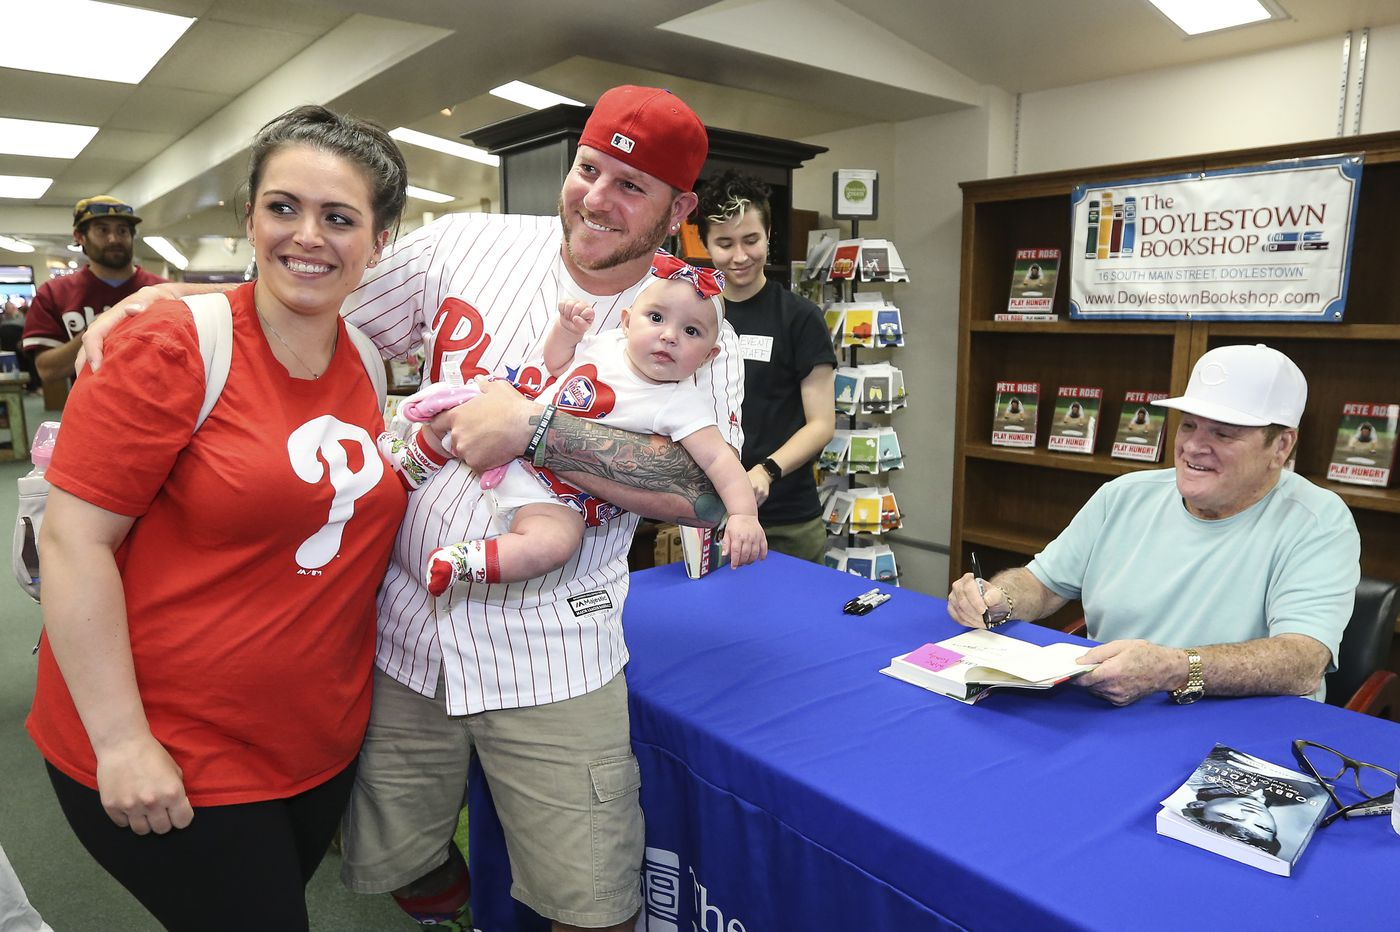 The UpShot: Phillies fans line up to meet Pete Rose at Doylestown book store